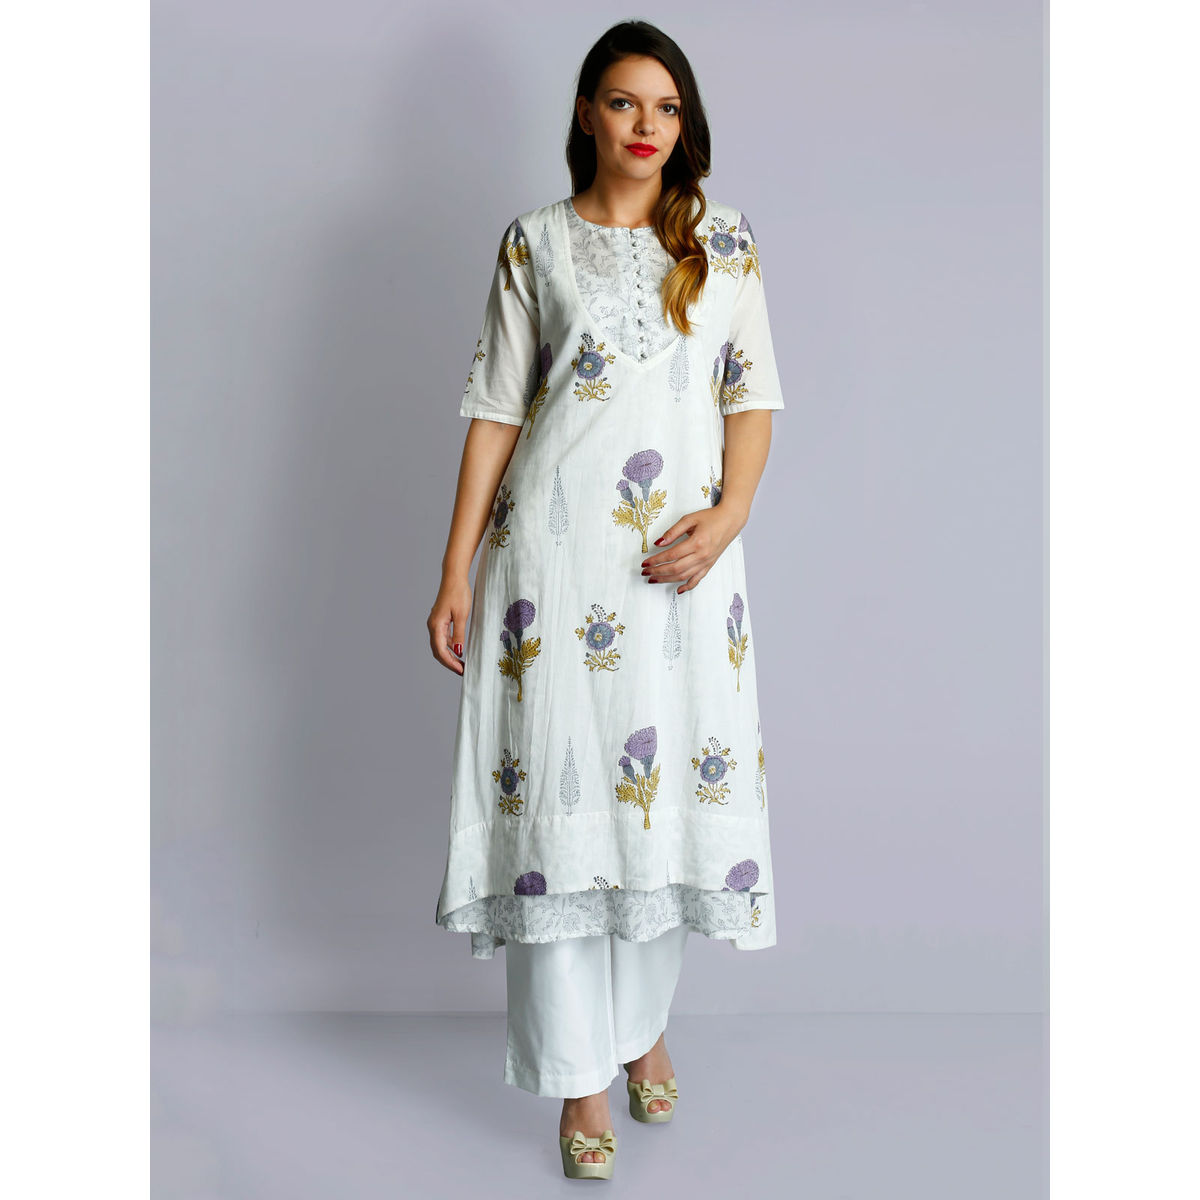 White cotton voile floral beige hand block prints layered tunic